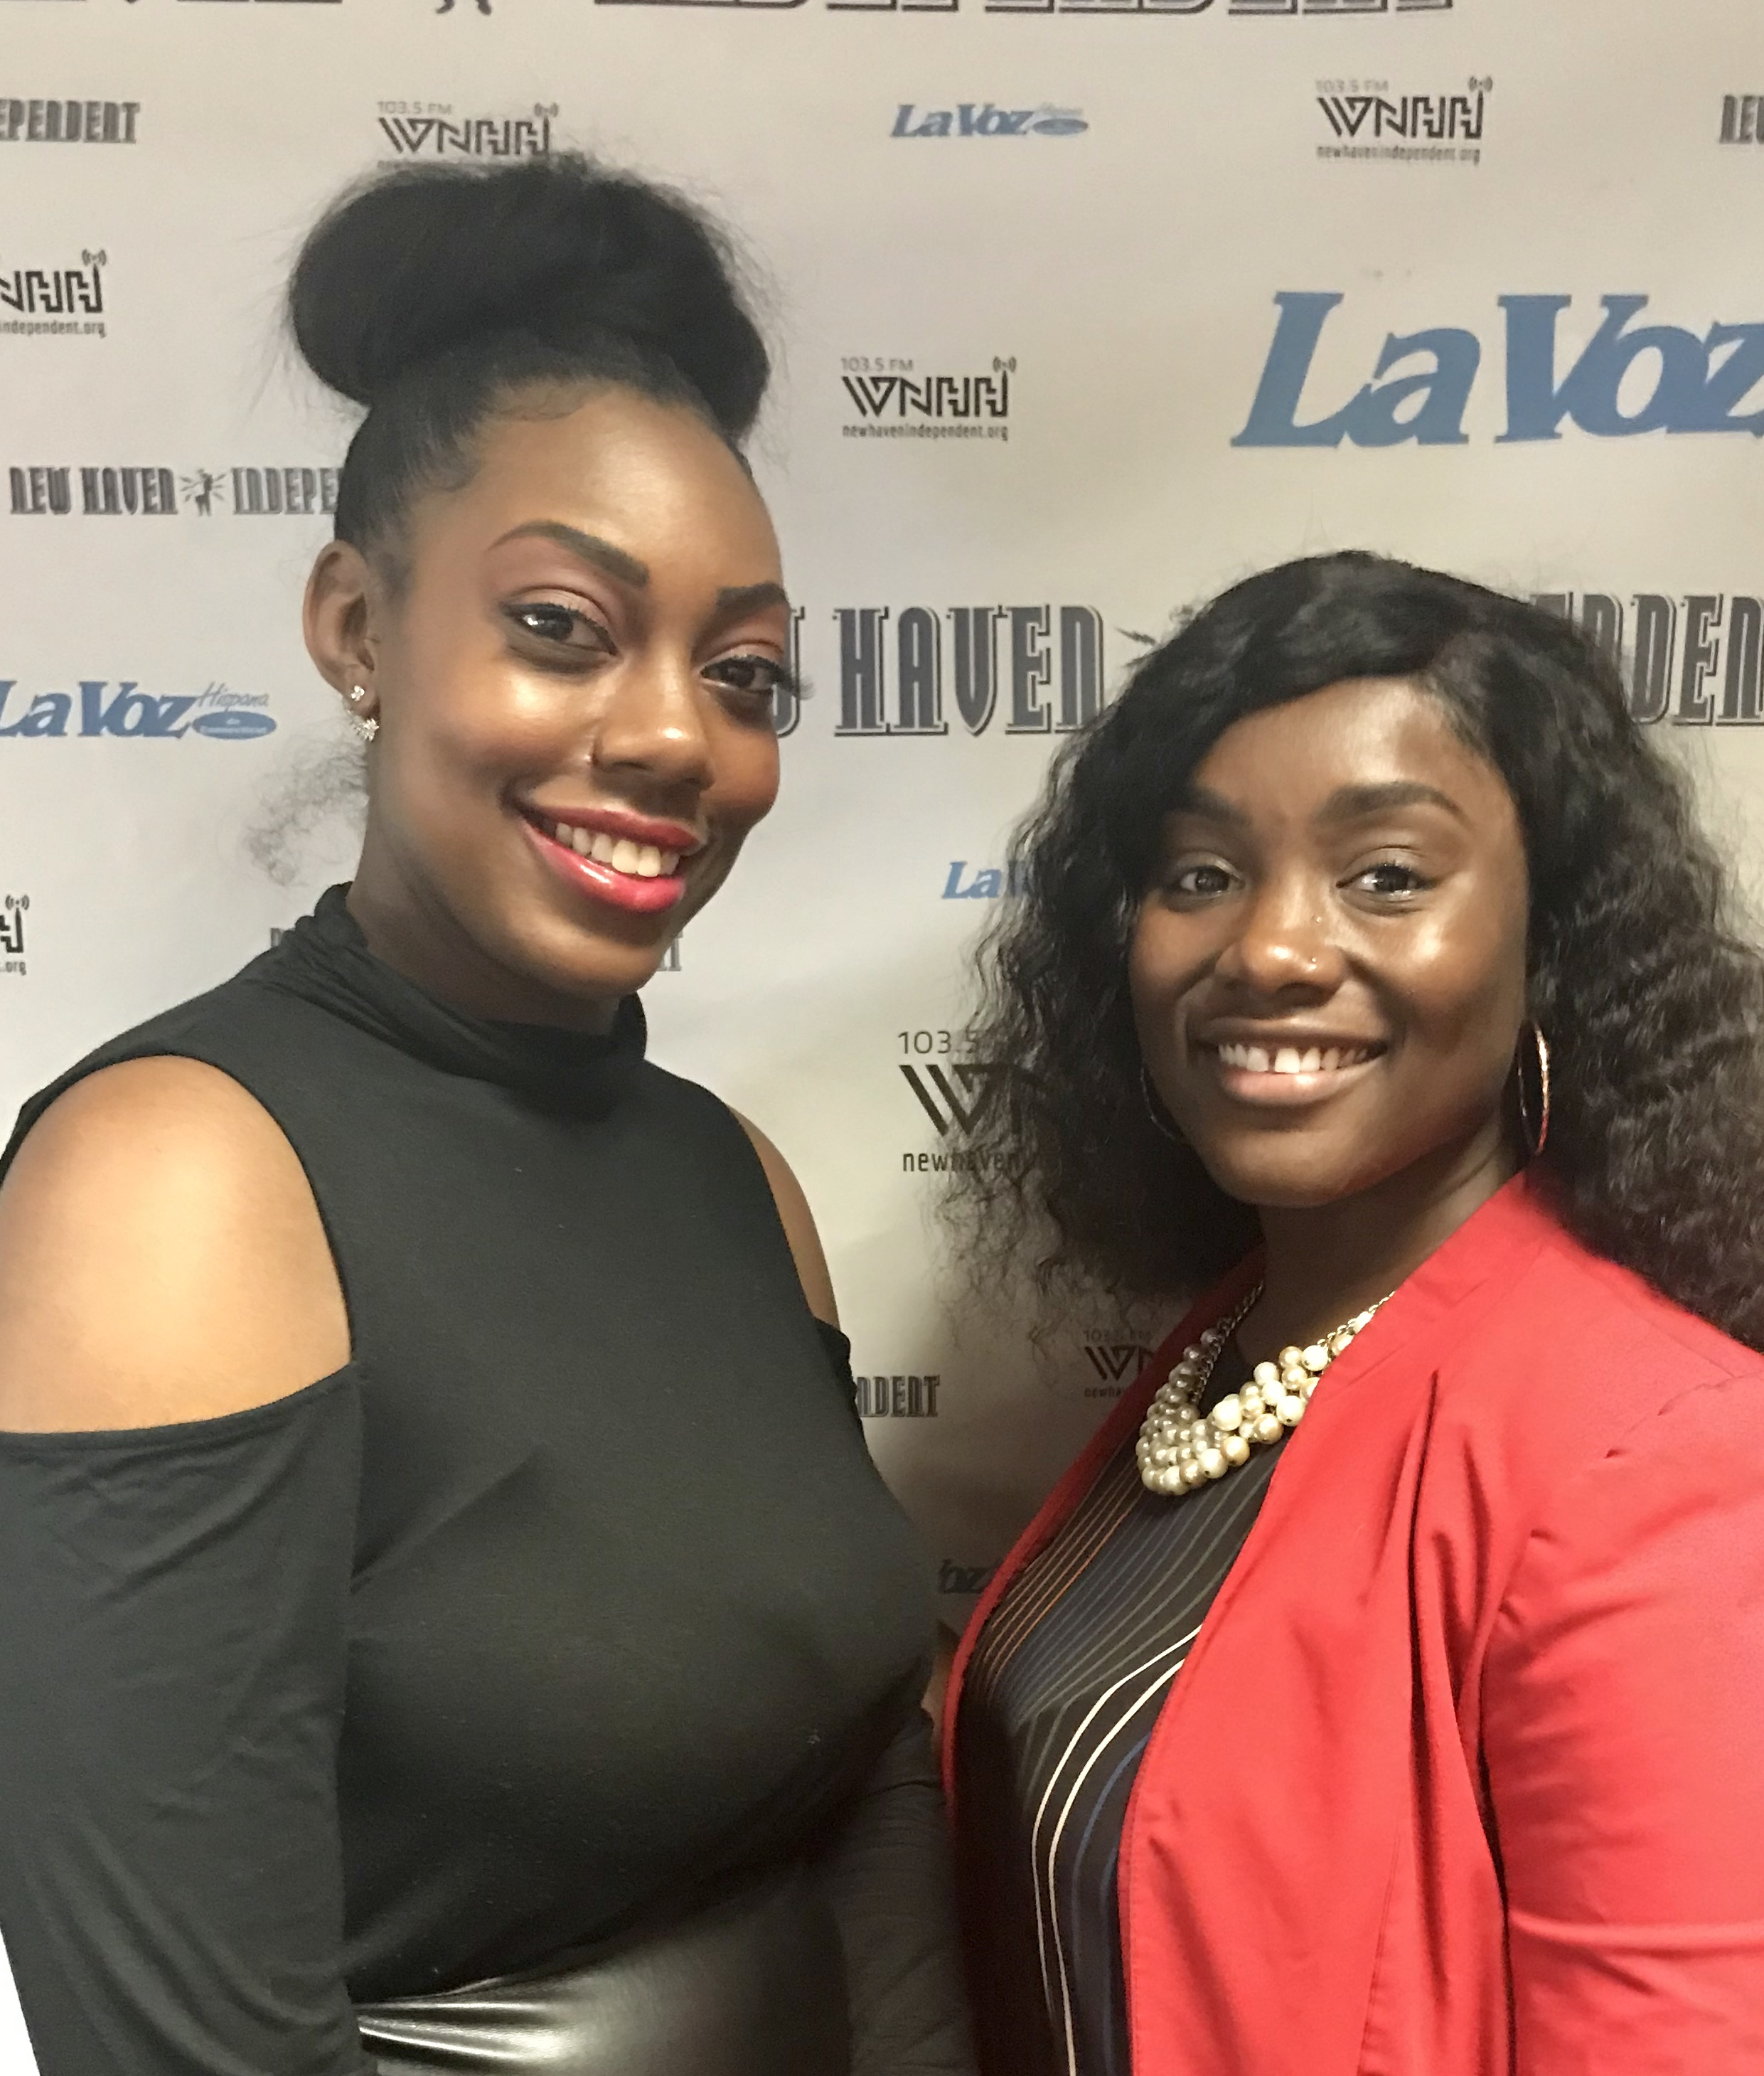 Host Mercy Quaye speaks with Leslie Monet Taylor, Founder & Head Publicist of Leslie Monet Public Relations, and Entertainment Writer for The Source Magazine.